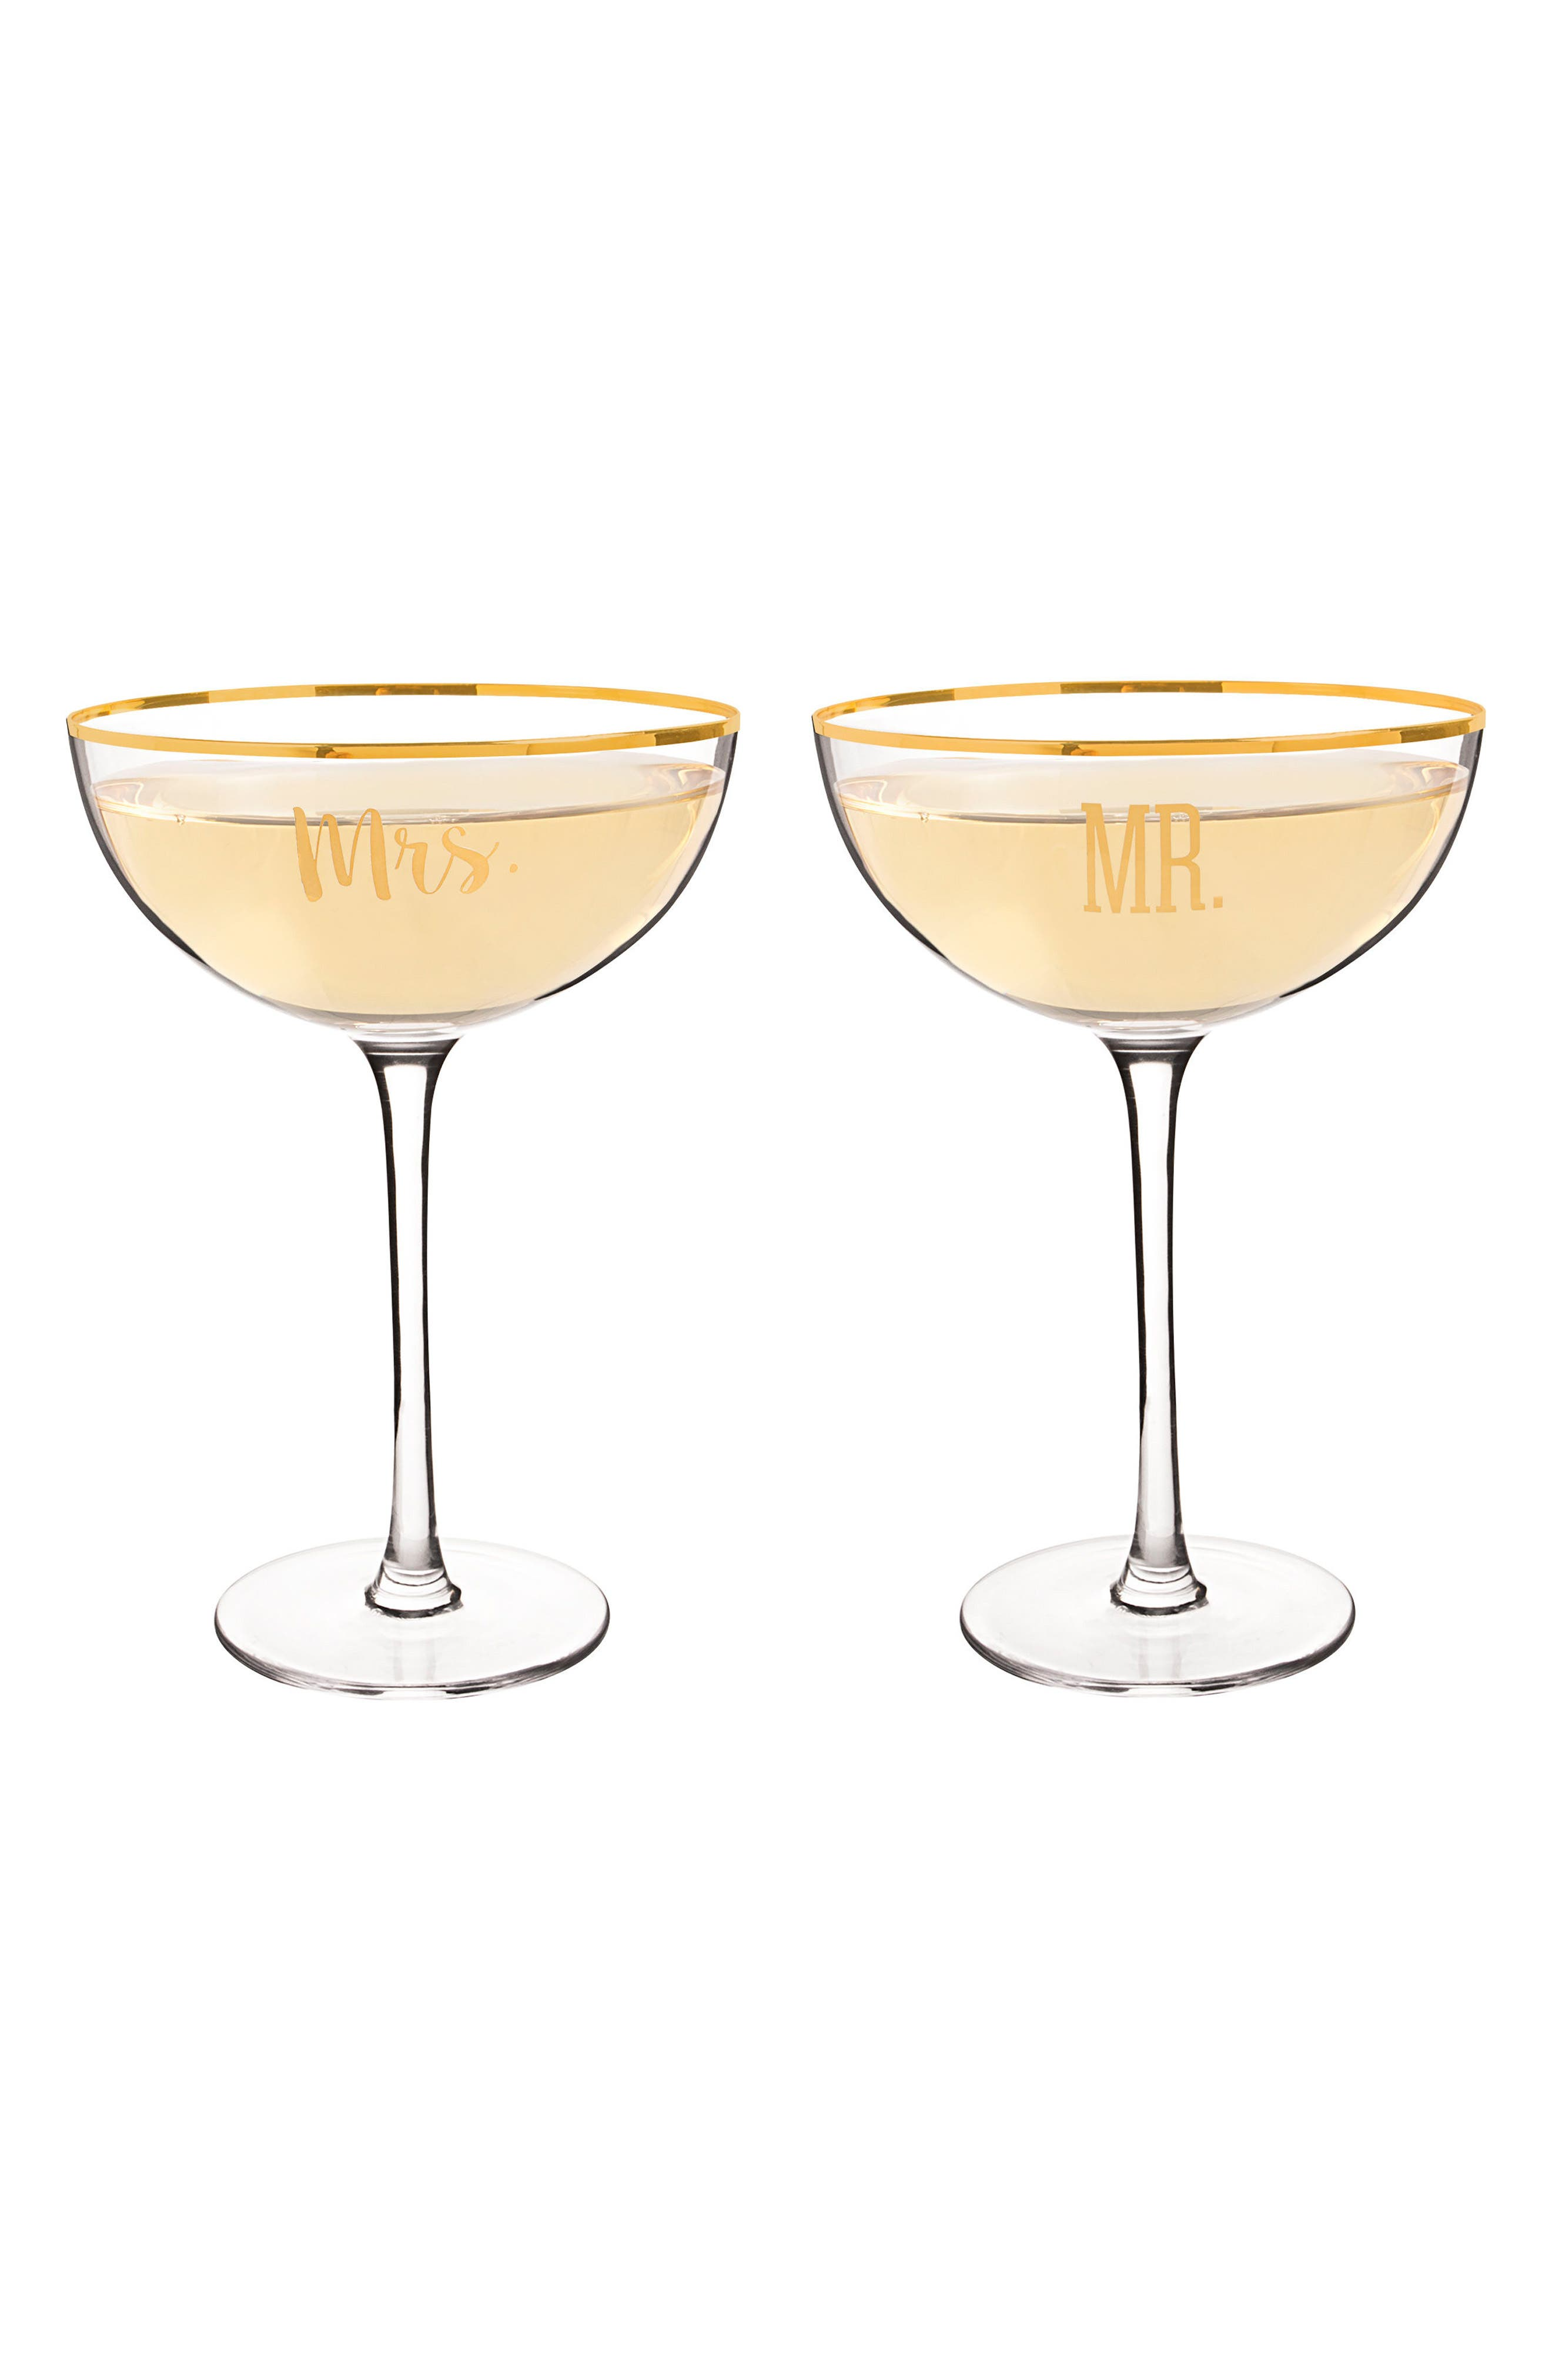 Mr. & Mrs. Set of 2 Champagne Coupe Toasting Glasses,                             Alternate thumbnail 4, color,                             710